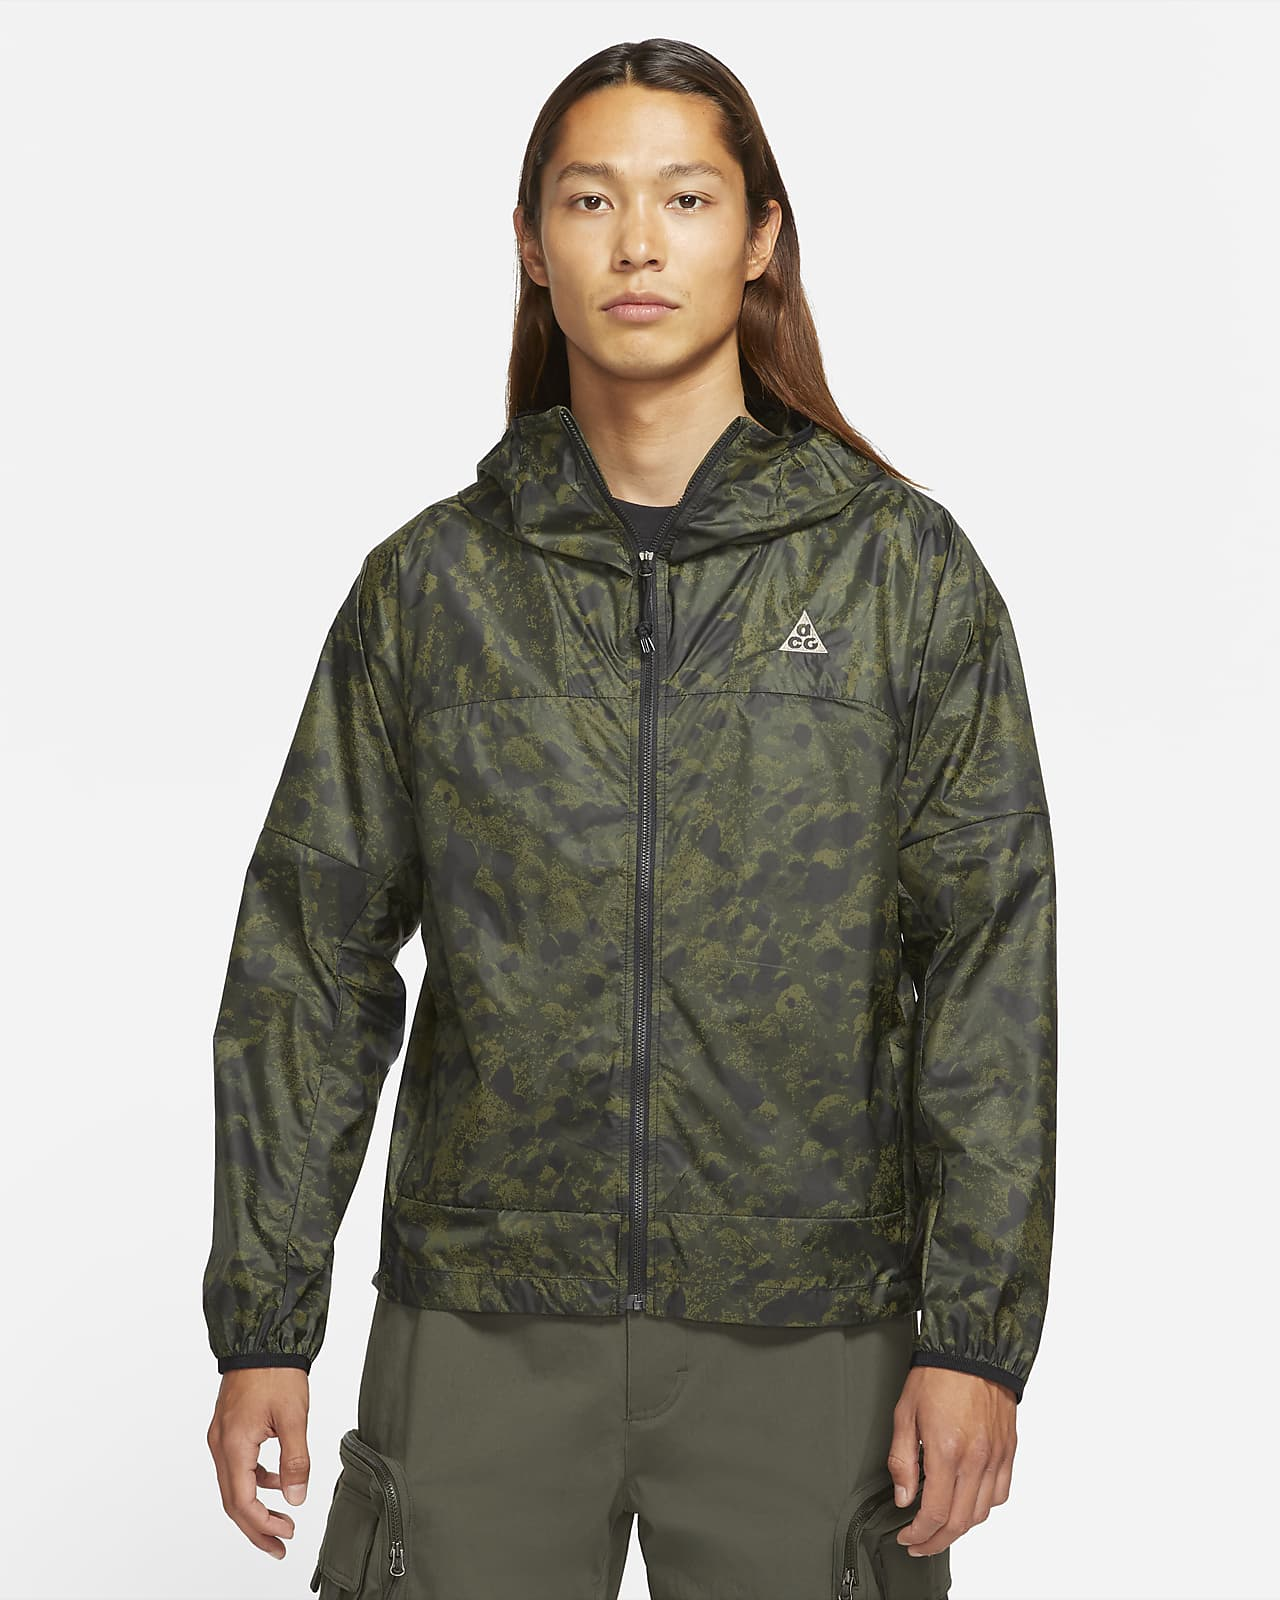 Nike ACG 'Cinder Cone' Men's All-Over Print Windproof Jacket